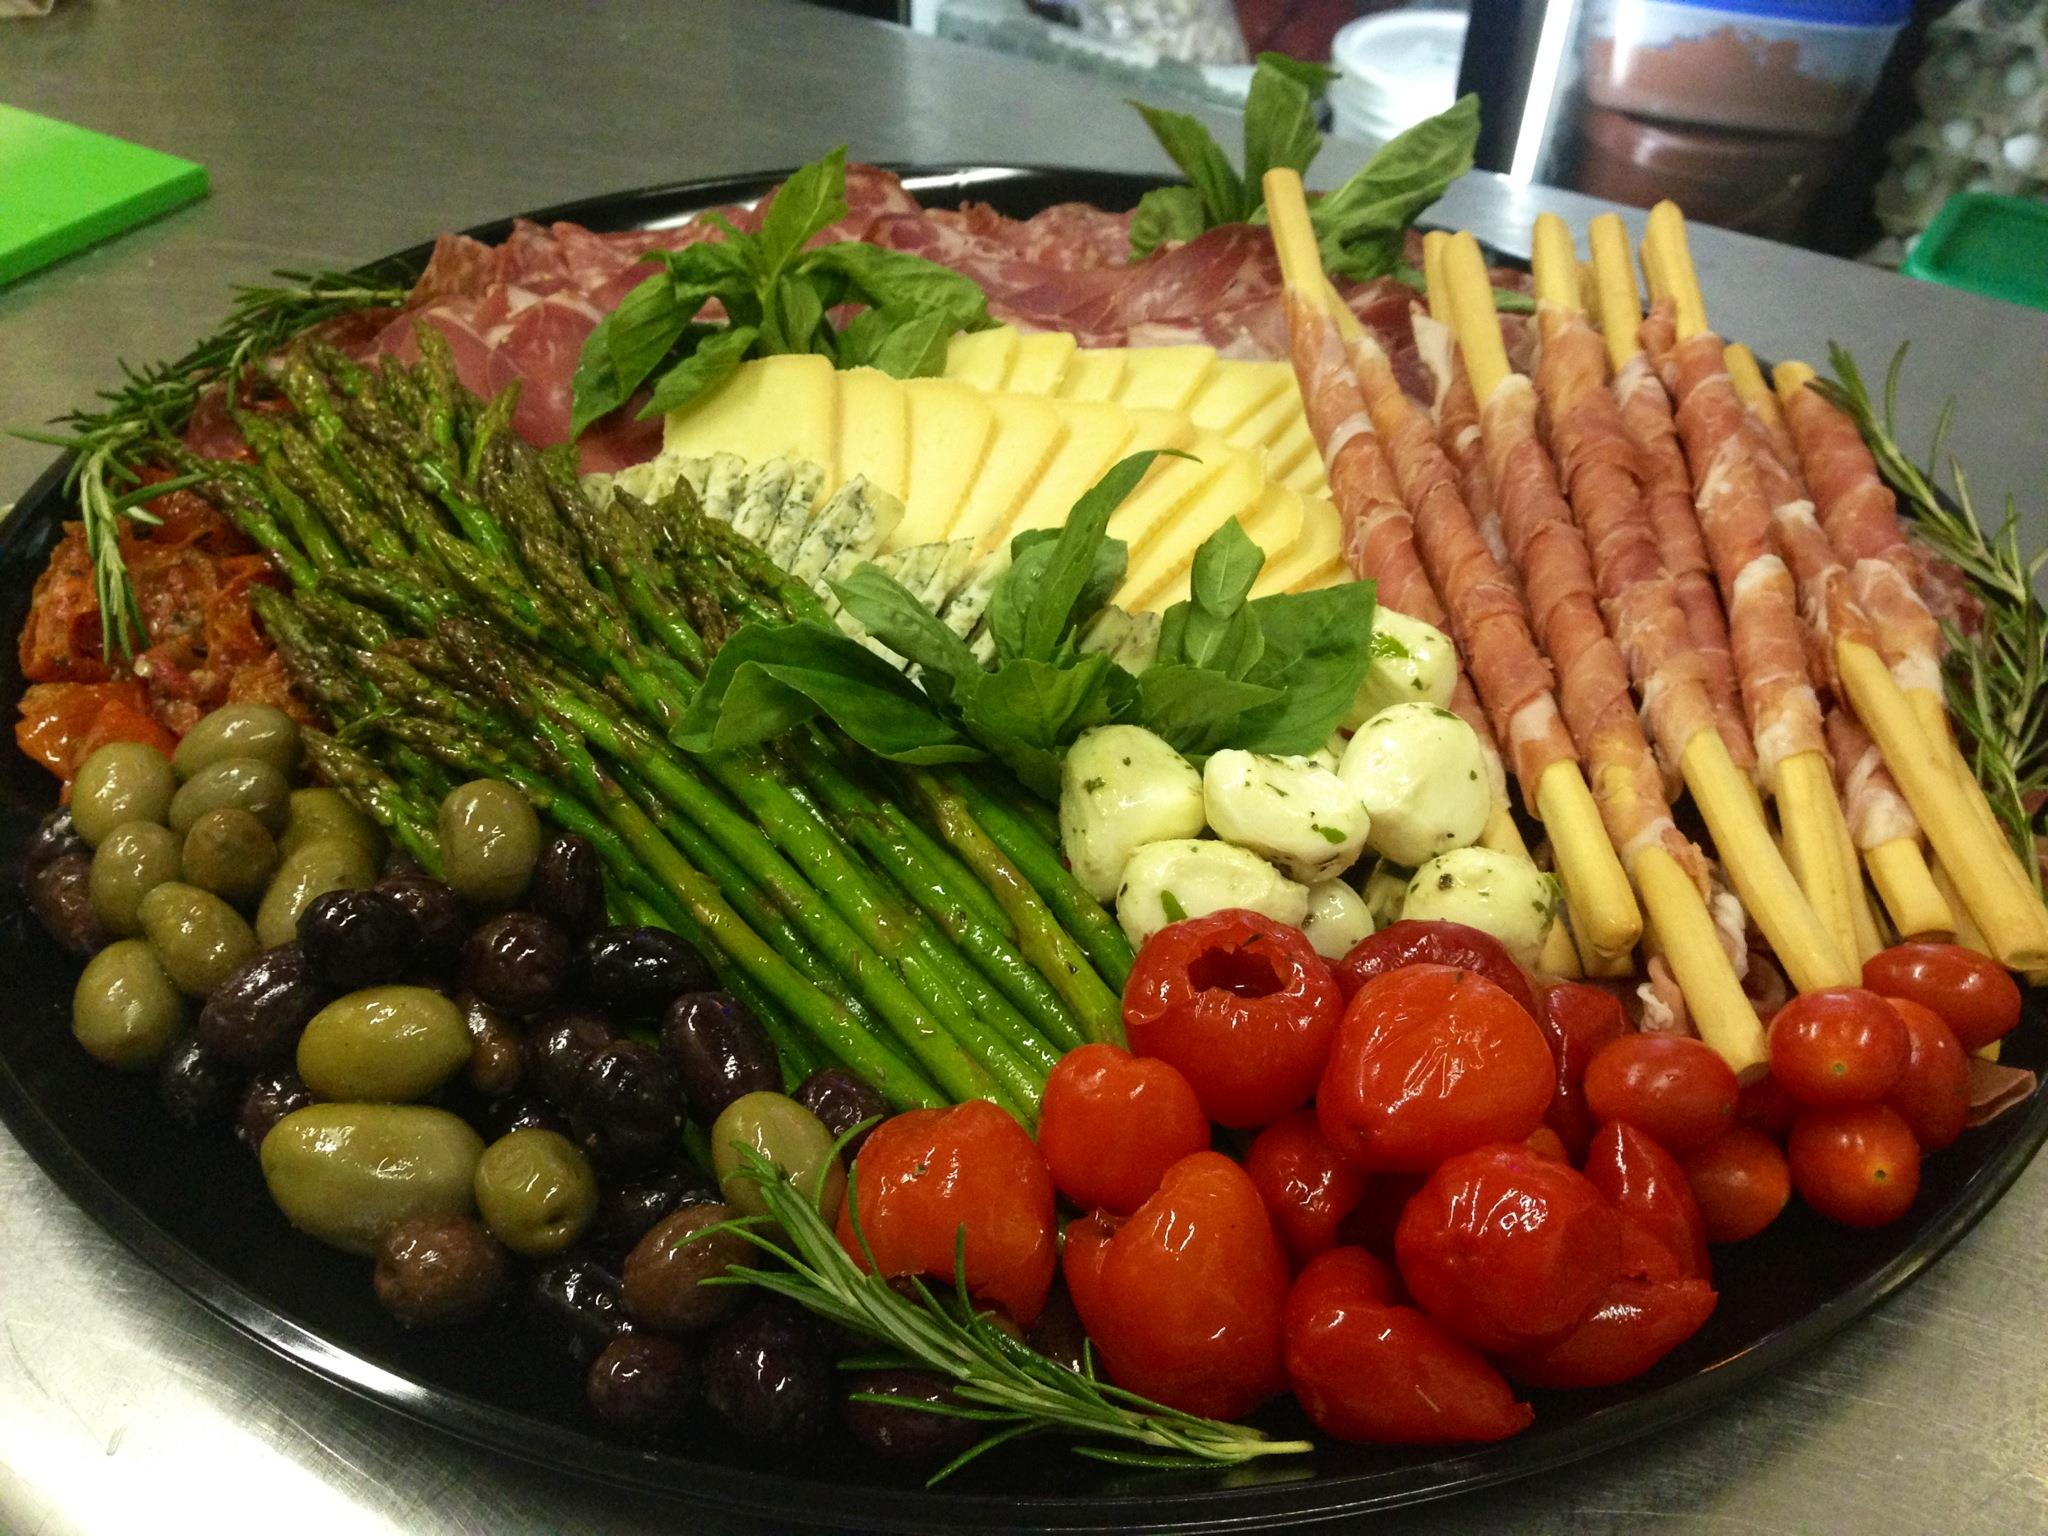 Tray of peppers, olives, cheeses, asparagus and italian cured meats